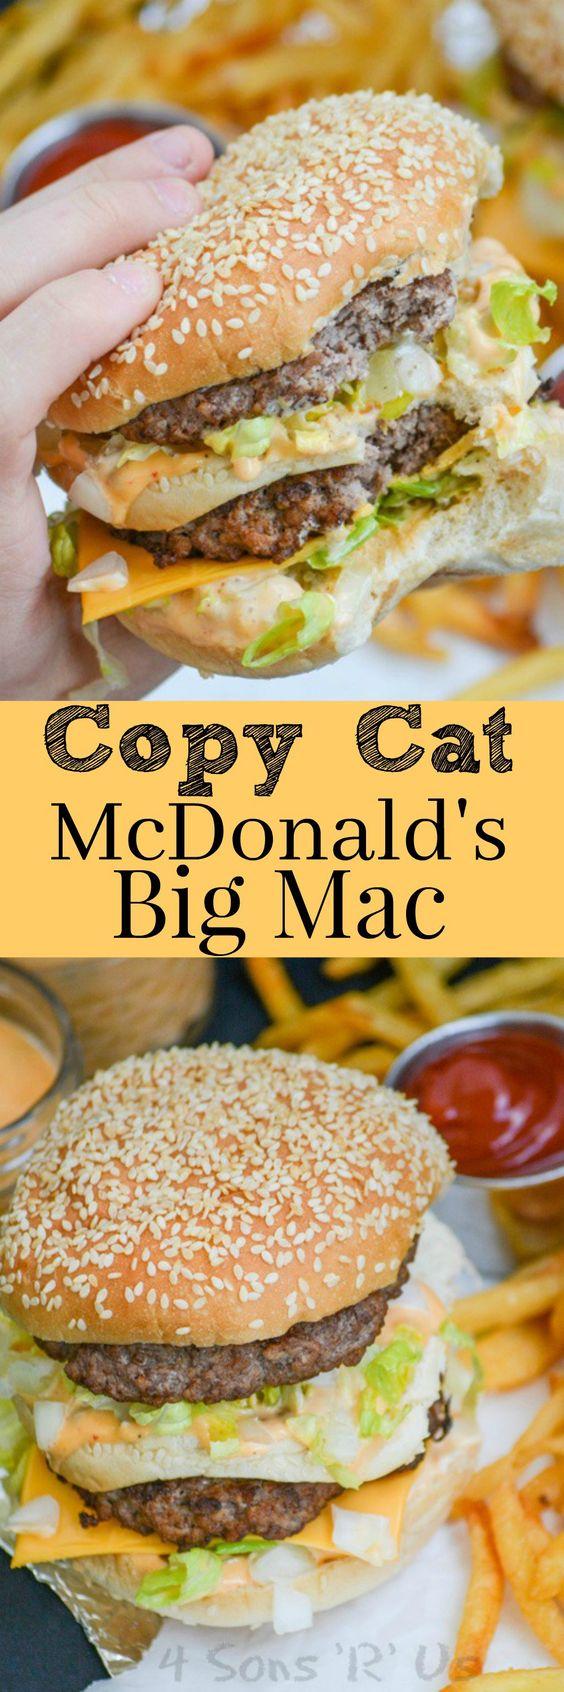 "Copycat McDonald's BIG MAC hamburger Recipe via 4 Sons ""R"" Us ""Get an authentic taste of your favorite fast food burger with this Copy Cat McDonald's Big Mac. It's got everything you crave about the classic double decker sandwich, including the 'secret sauce', that's a spot on replica. Serve it with an ice cold coke, and crispy french fries for an authentic lunch or dinner."""